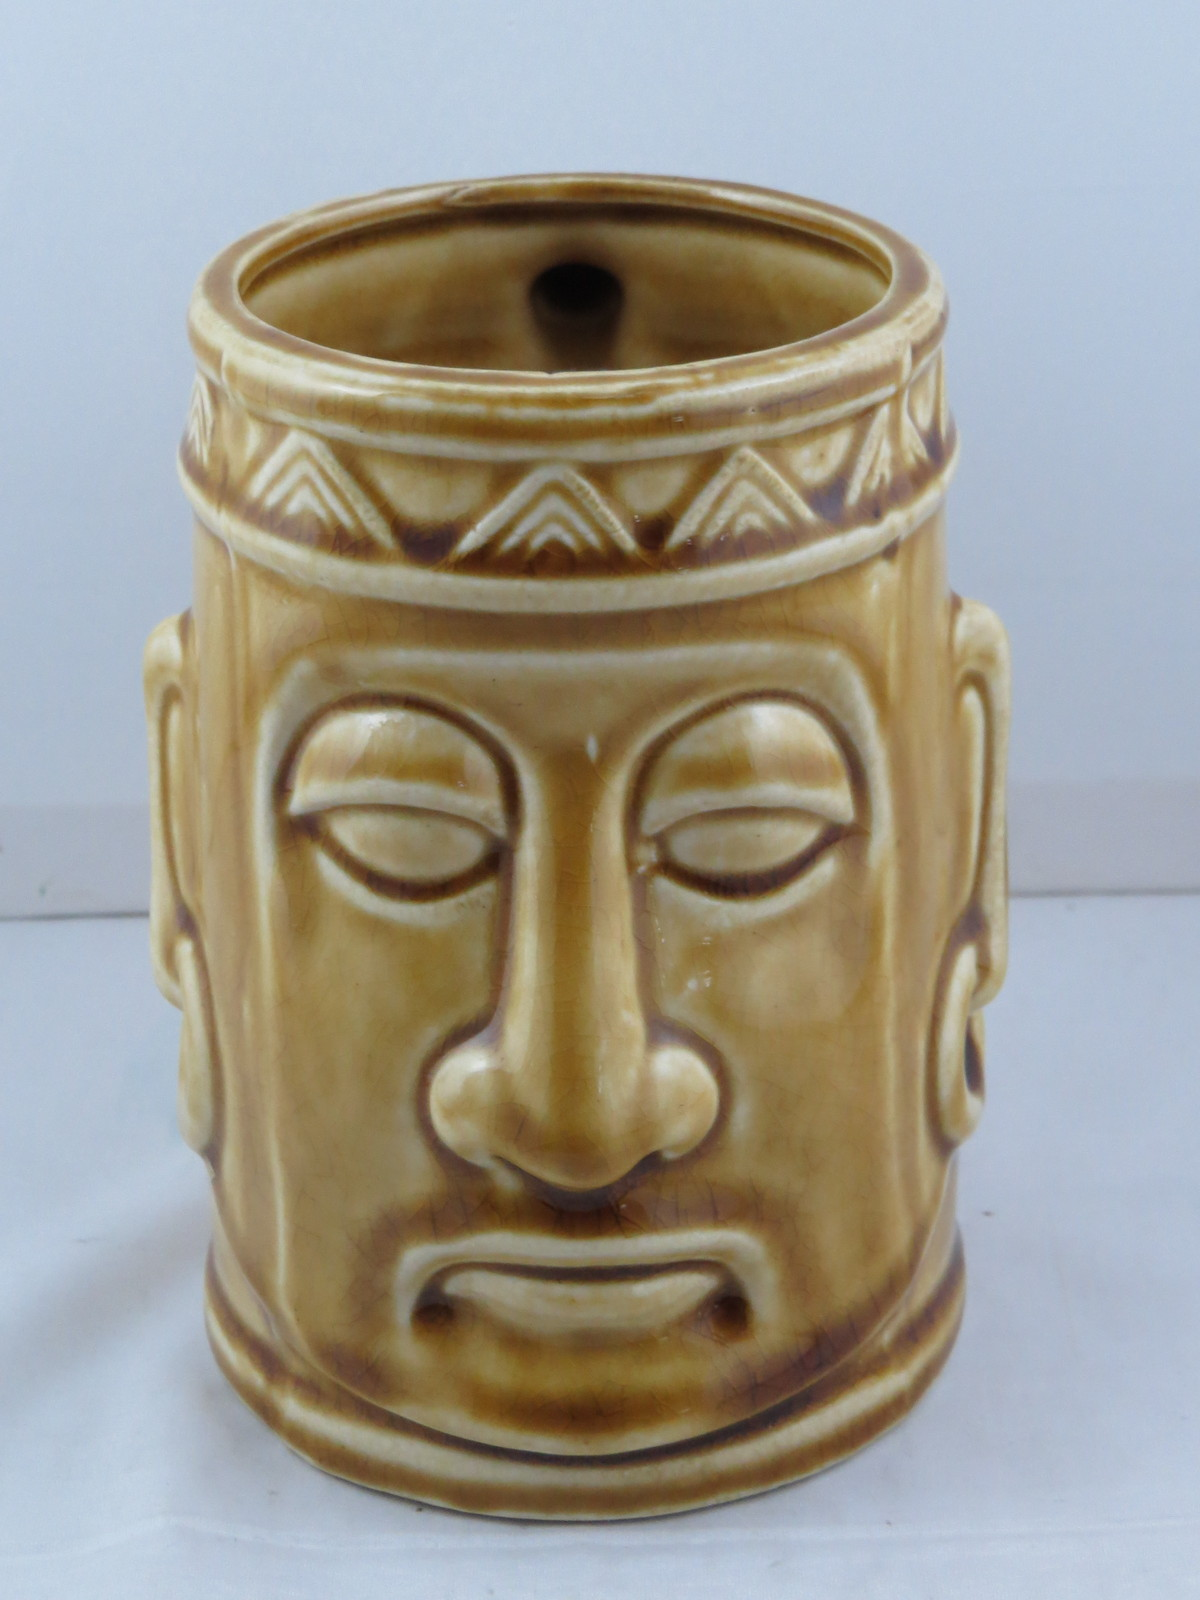 Primary image for Vintage Tiki Mug - Tribal King Head - Made in Japan - Ceramic Mug